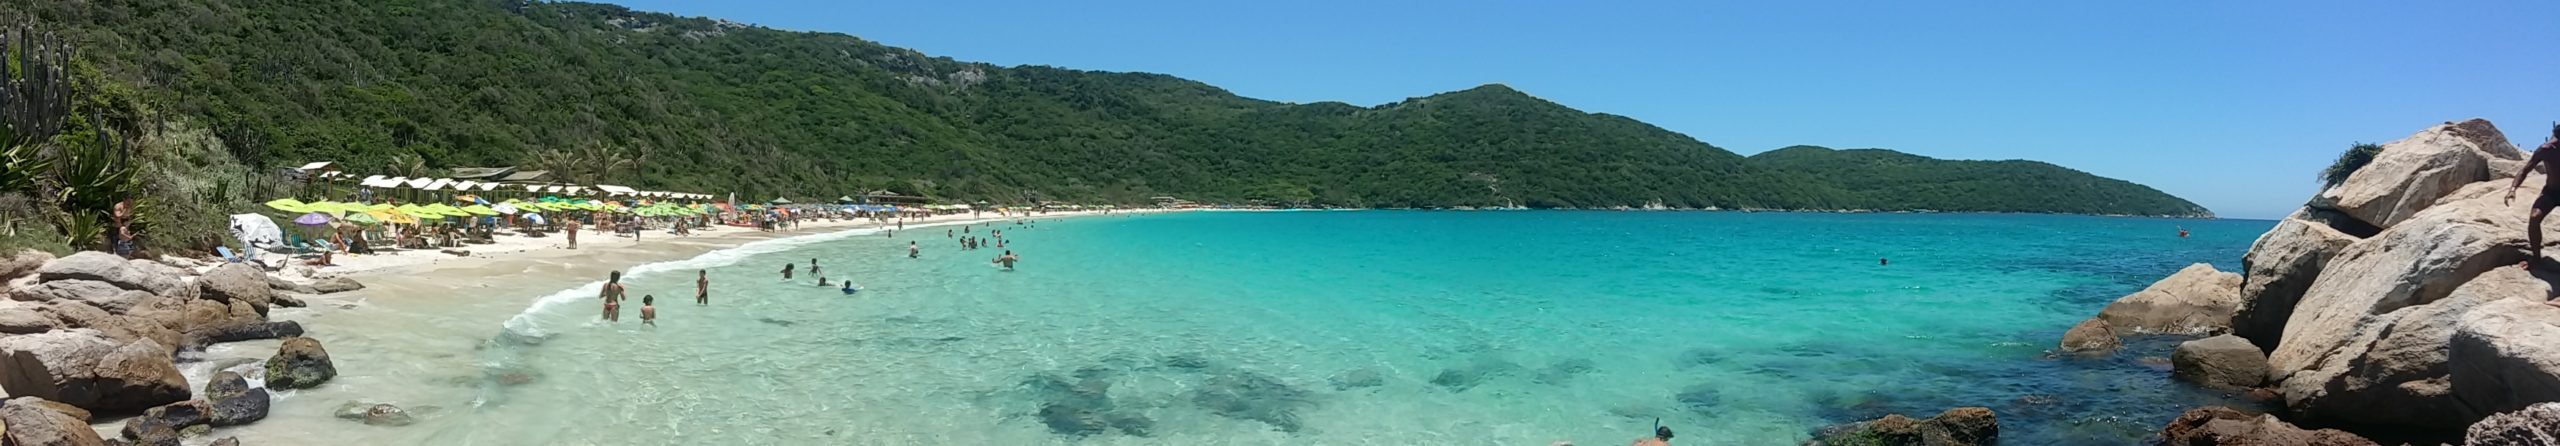 Praia Arraial do Cabo